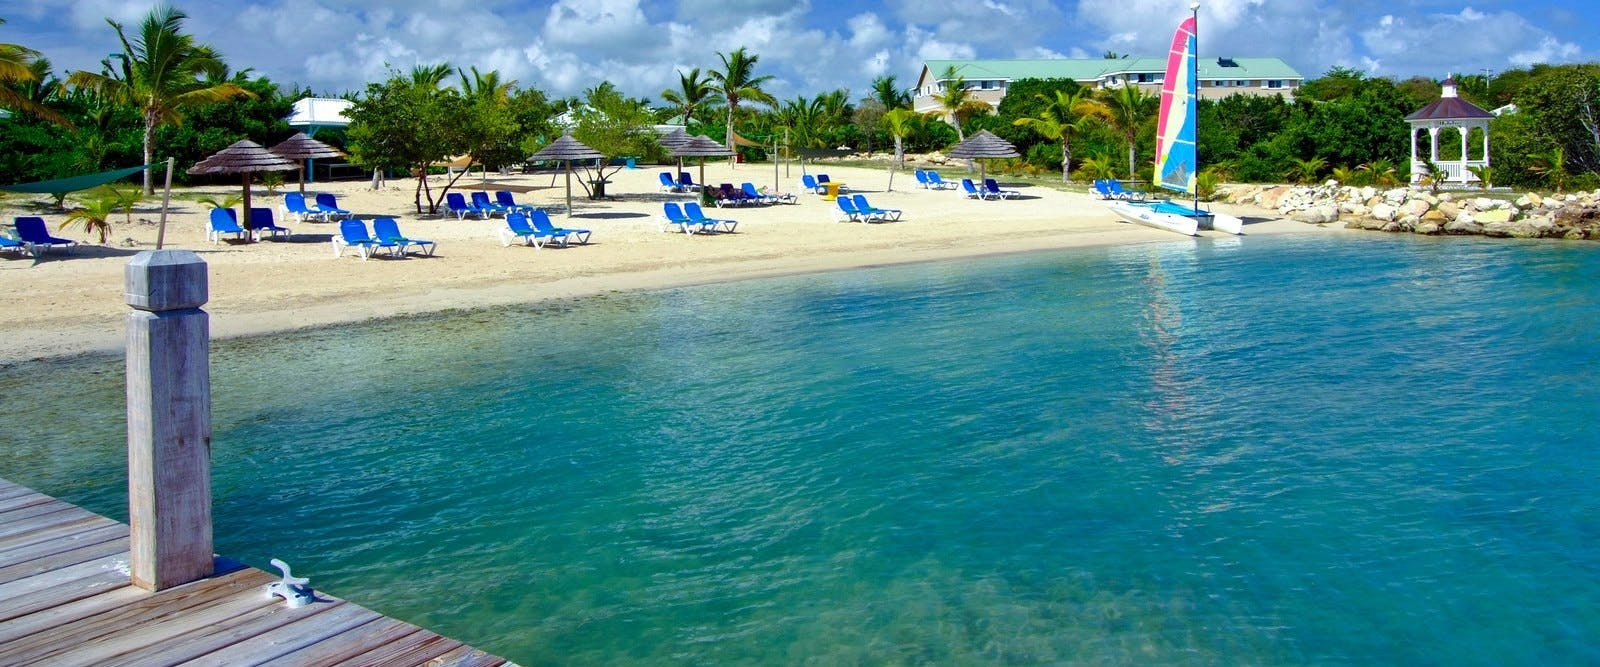 Beach at The Verandah Resort & Spa, Antigua